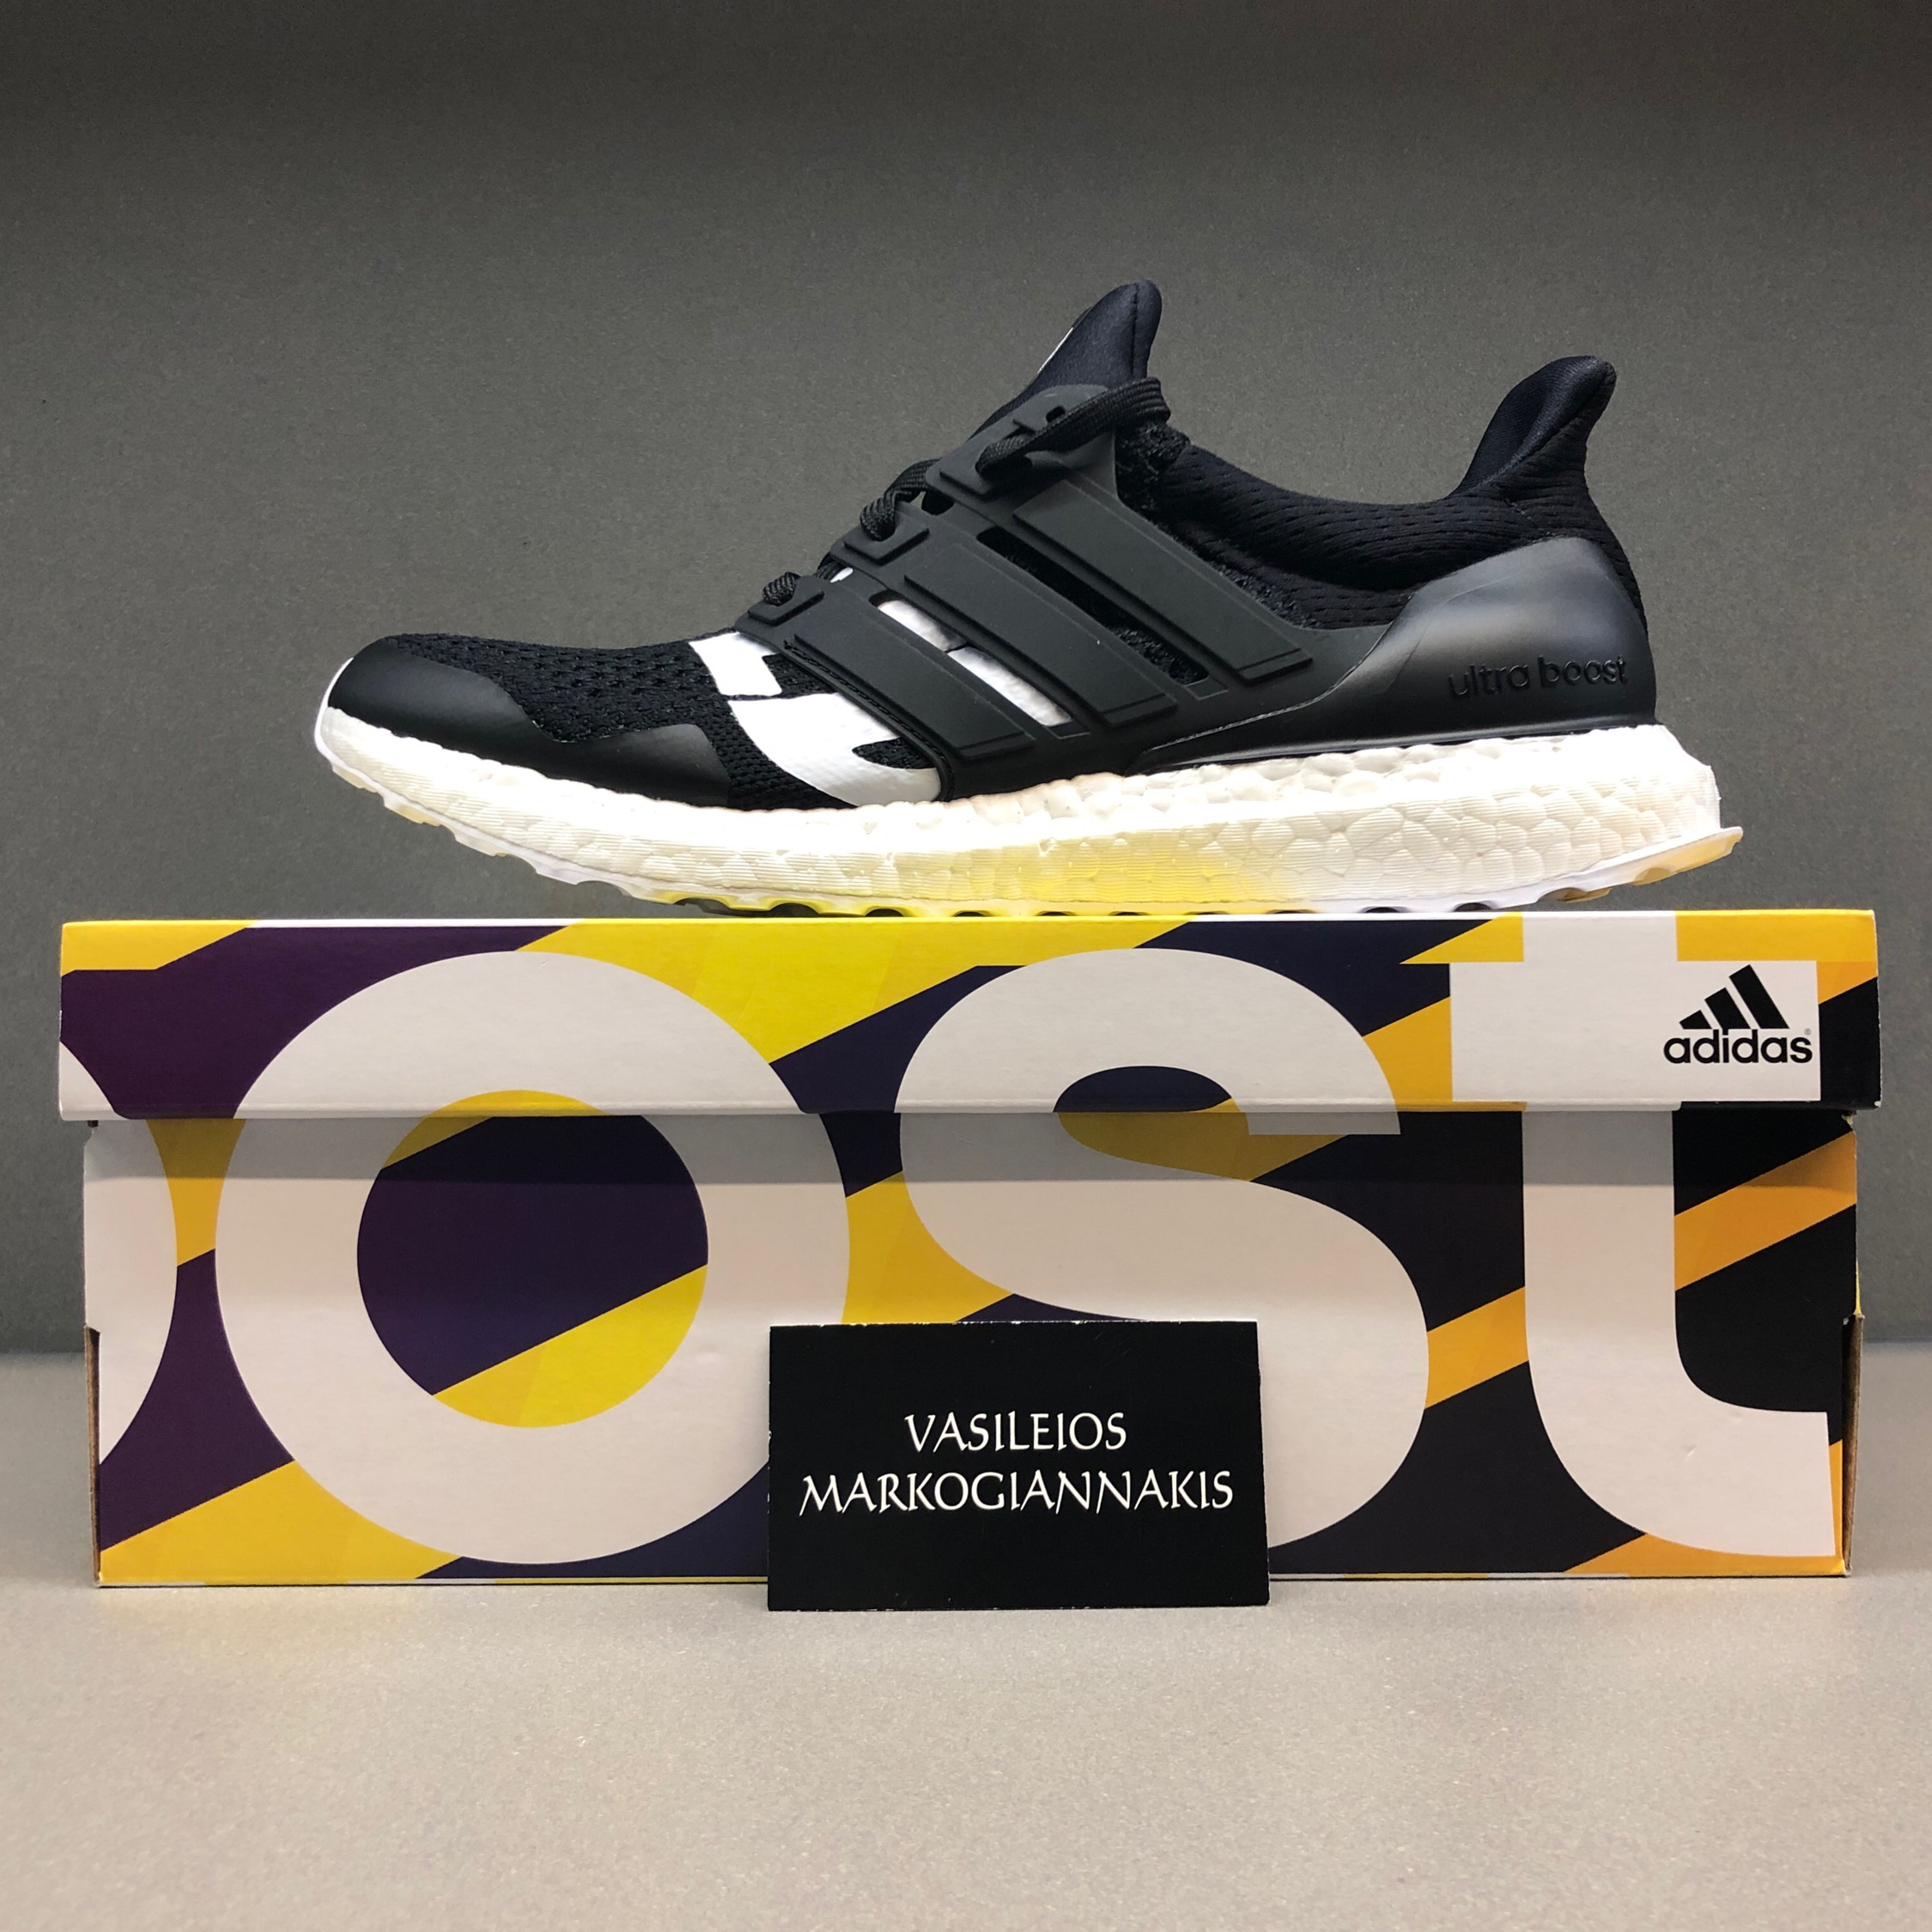 watch 9d0a8 66e58 Adidas Ultra Boost 4.0 Black X Undefeated